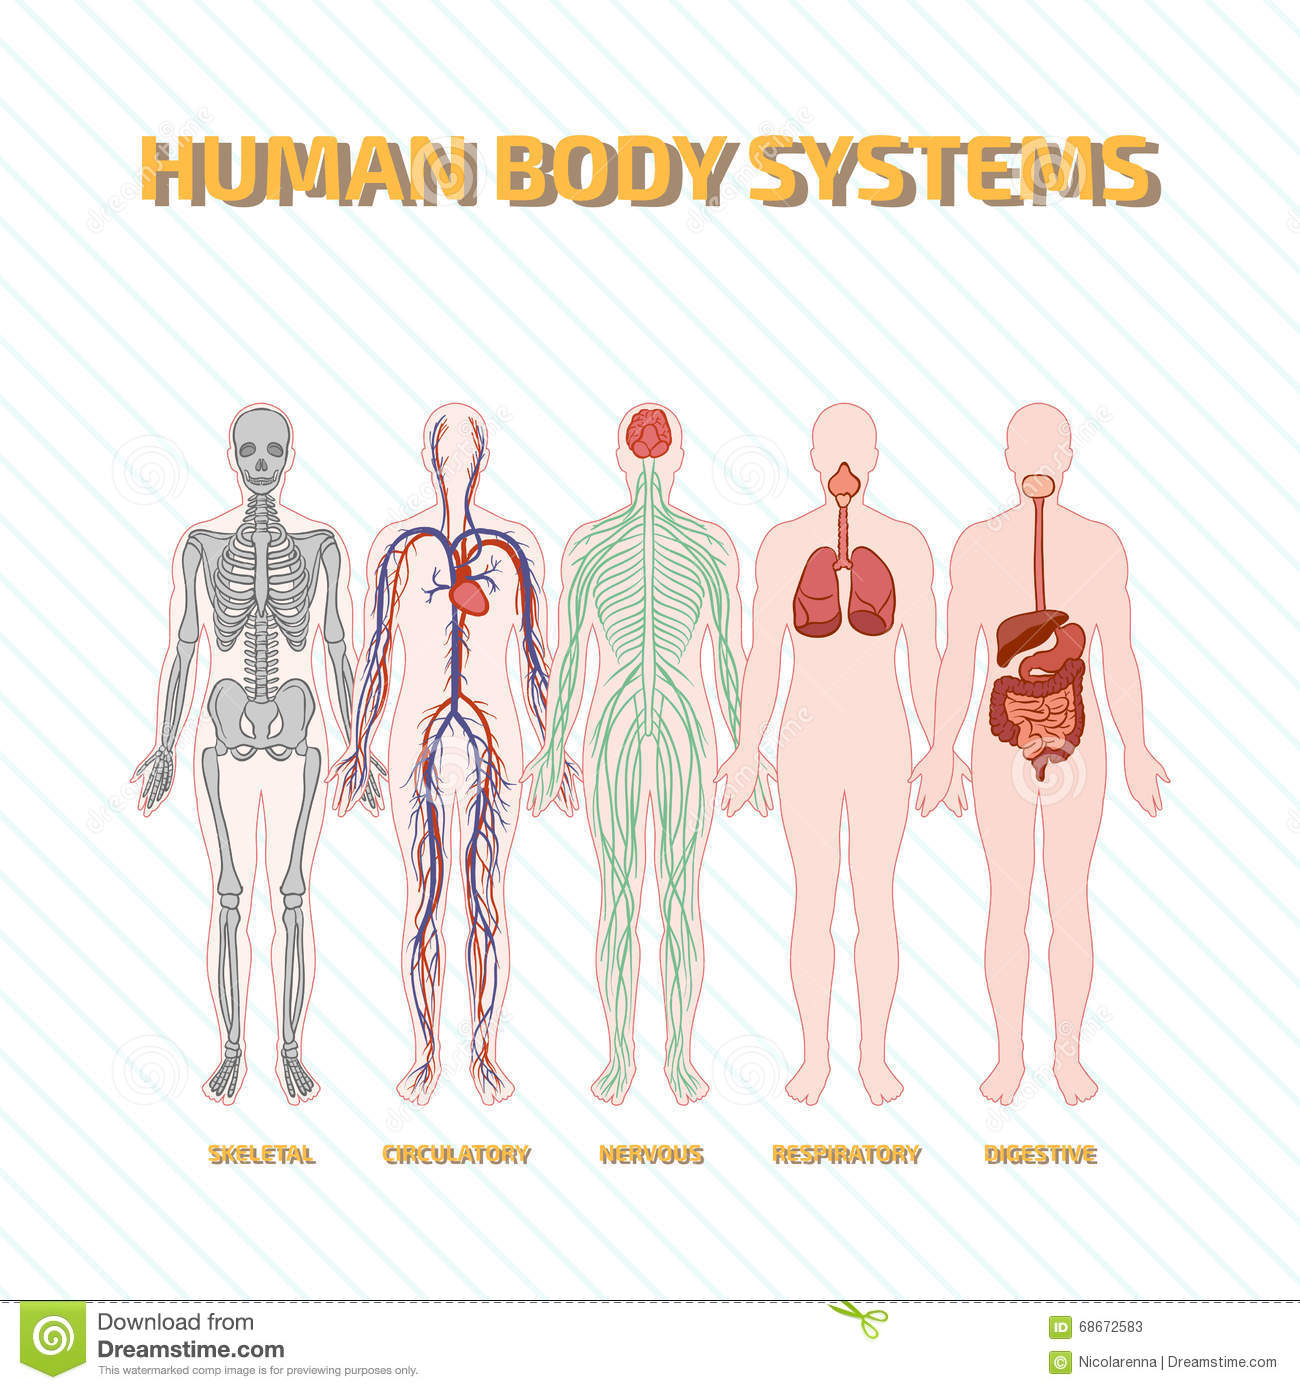 Download this free picture about Human Body Circulatory System from Pixabays vast library of public domain images and videos